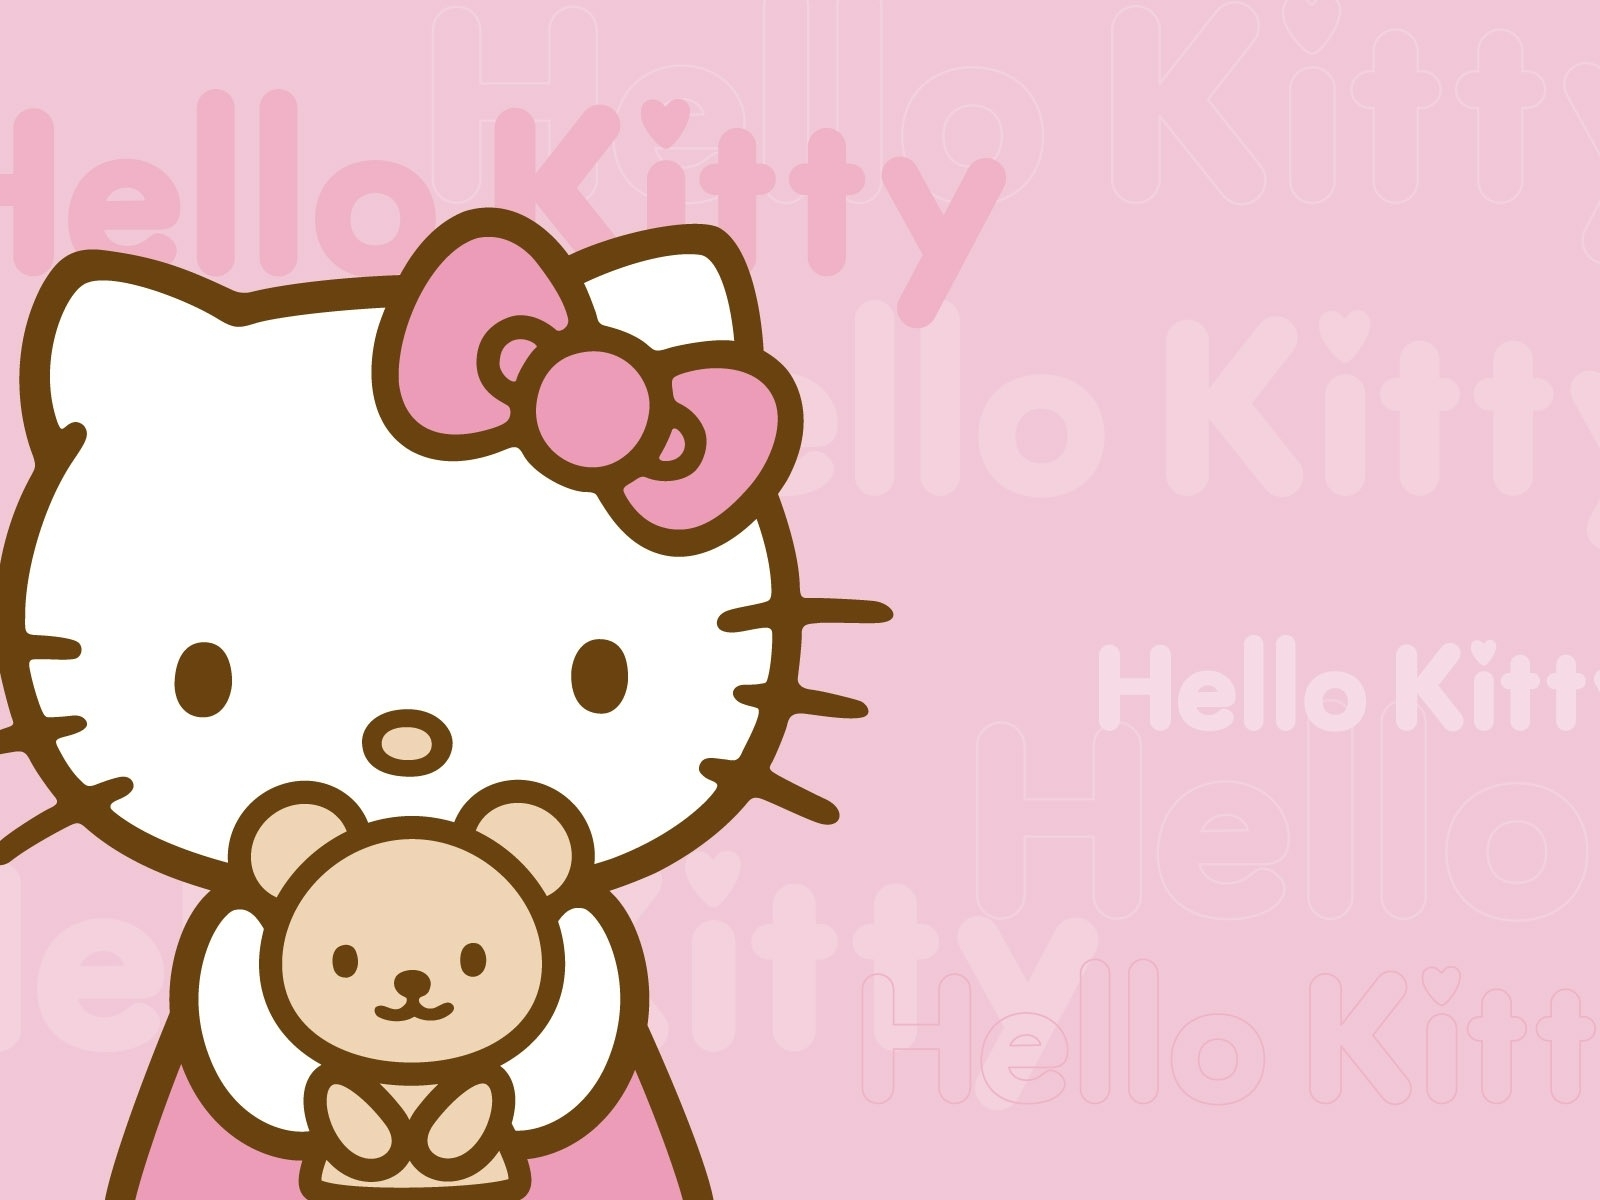 free hello kitty wallpapers desktop background « long wallpapers